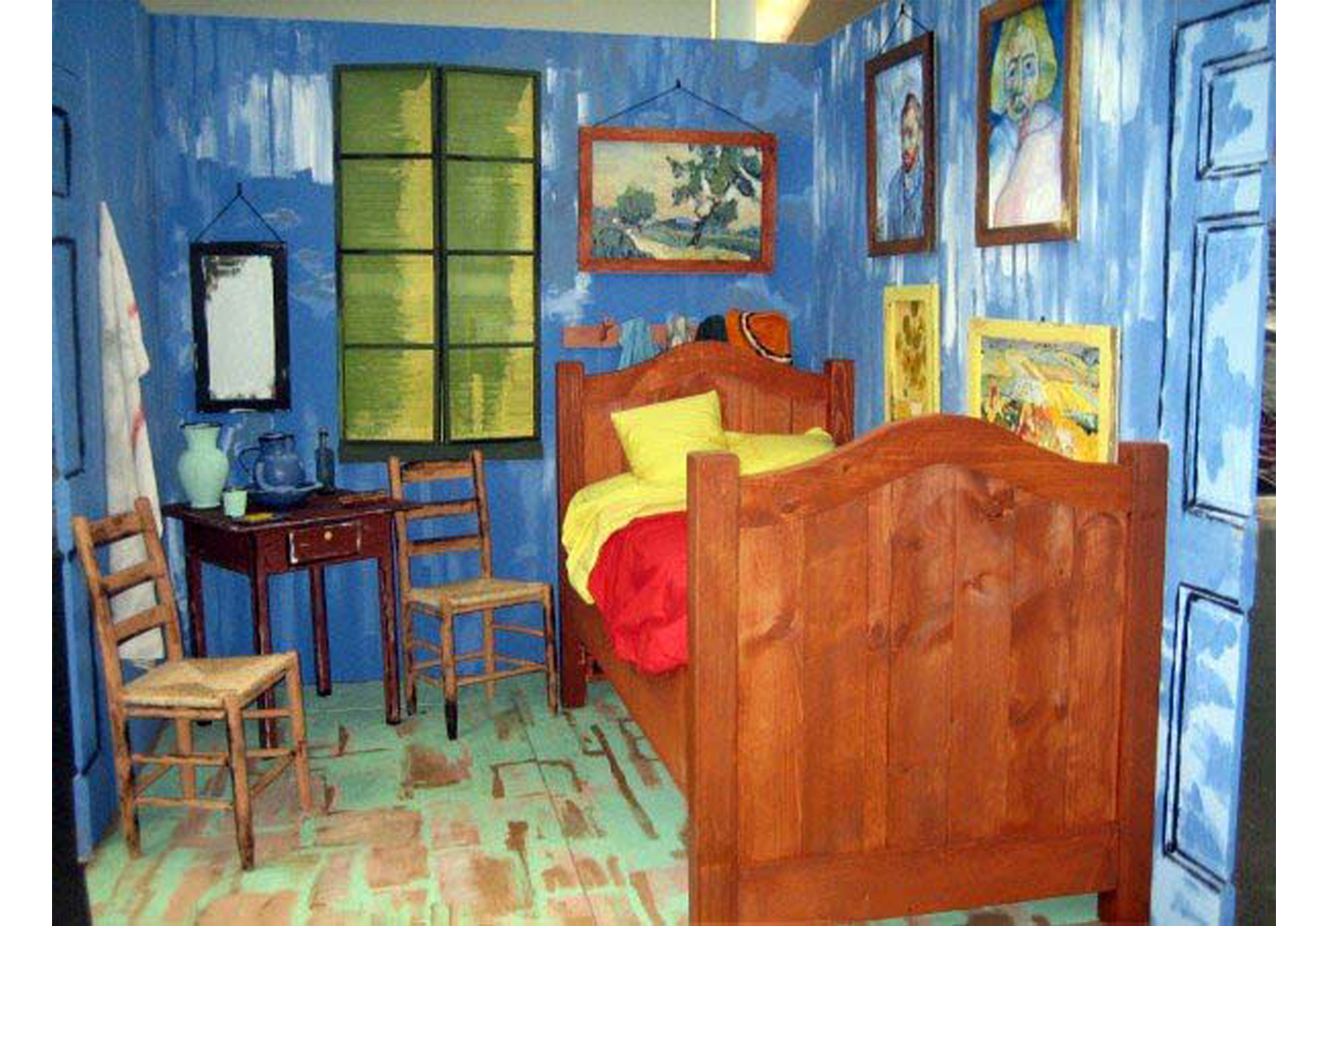 prop construction _ scenic painting_3D realization of Van Gogh's bedroom at Arles_Leonard Bernstein Festival of the Arts, Brandeis University_2007.png